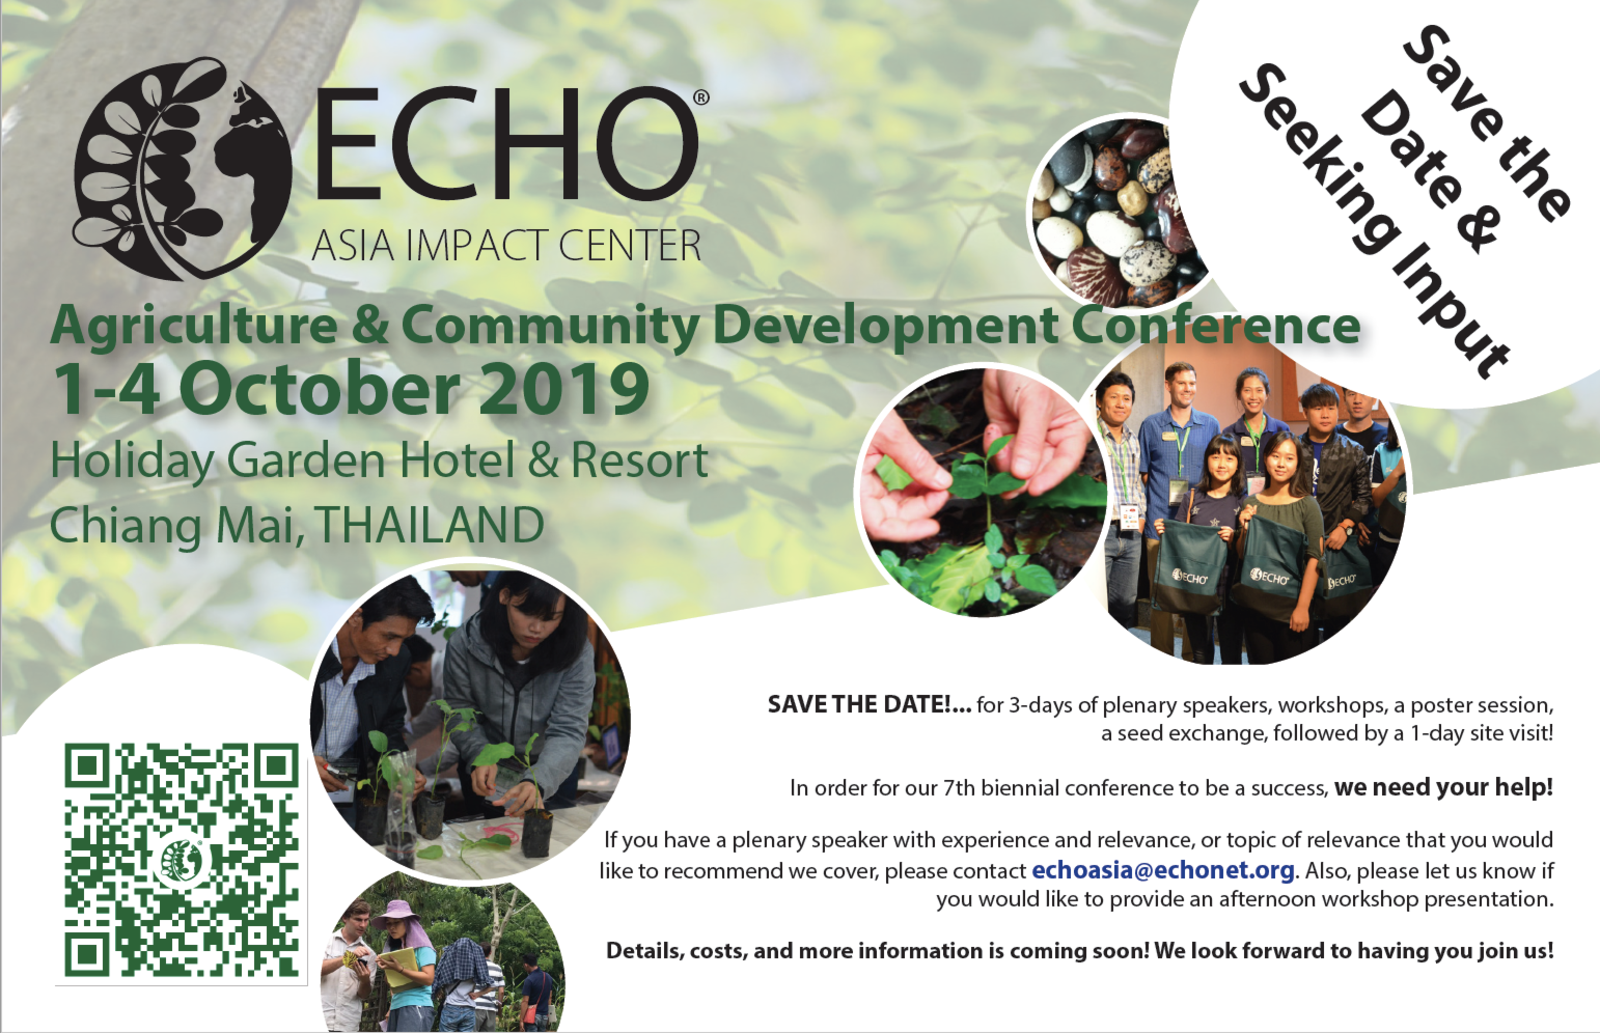 Echo asia agriculture community development conference 2019 save the date lg